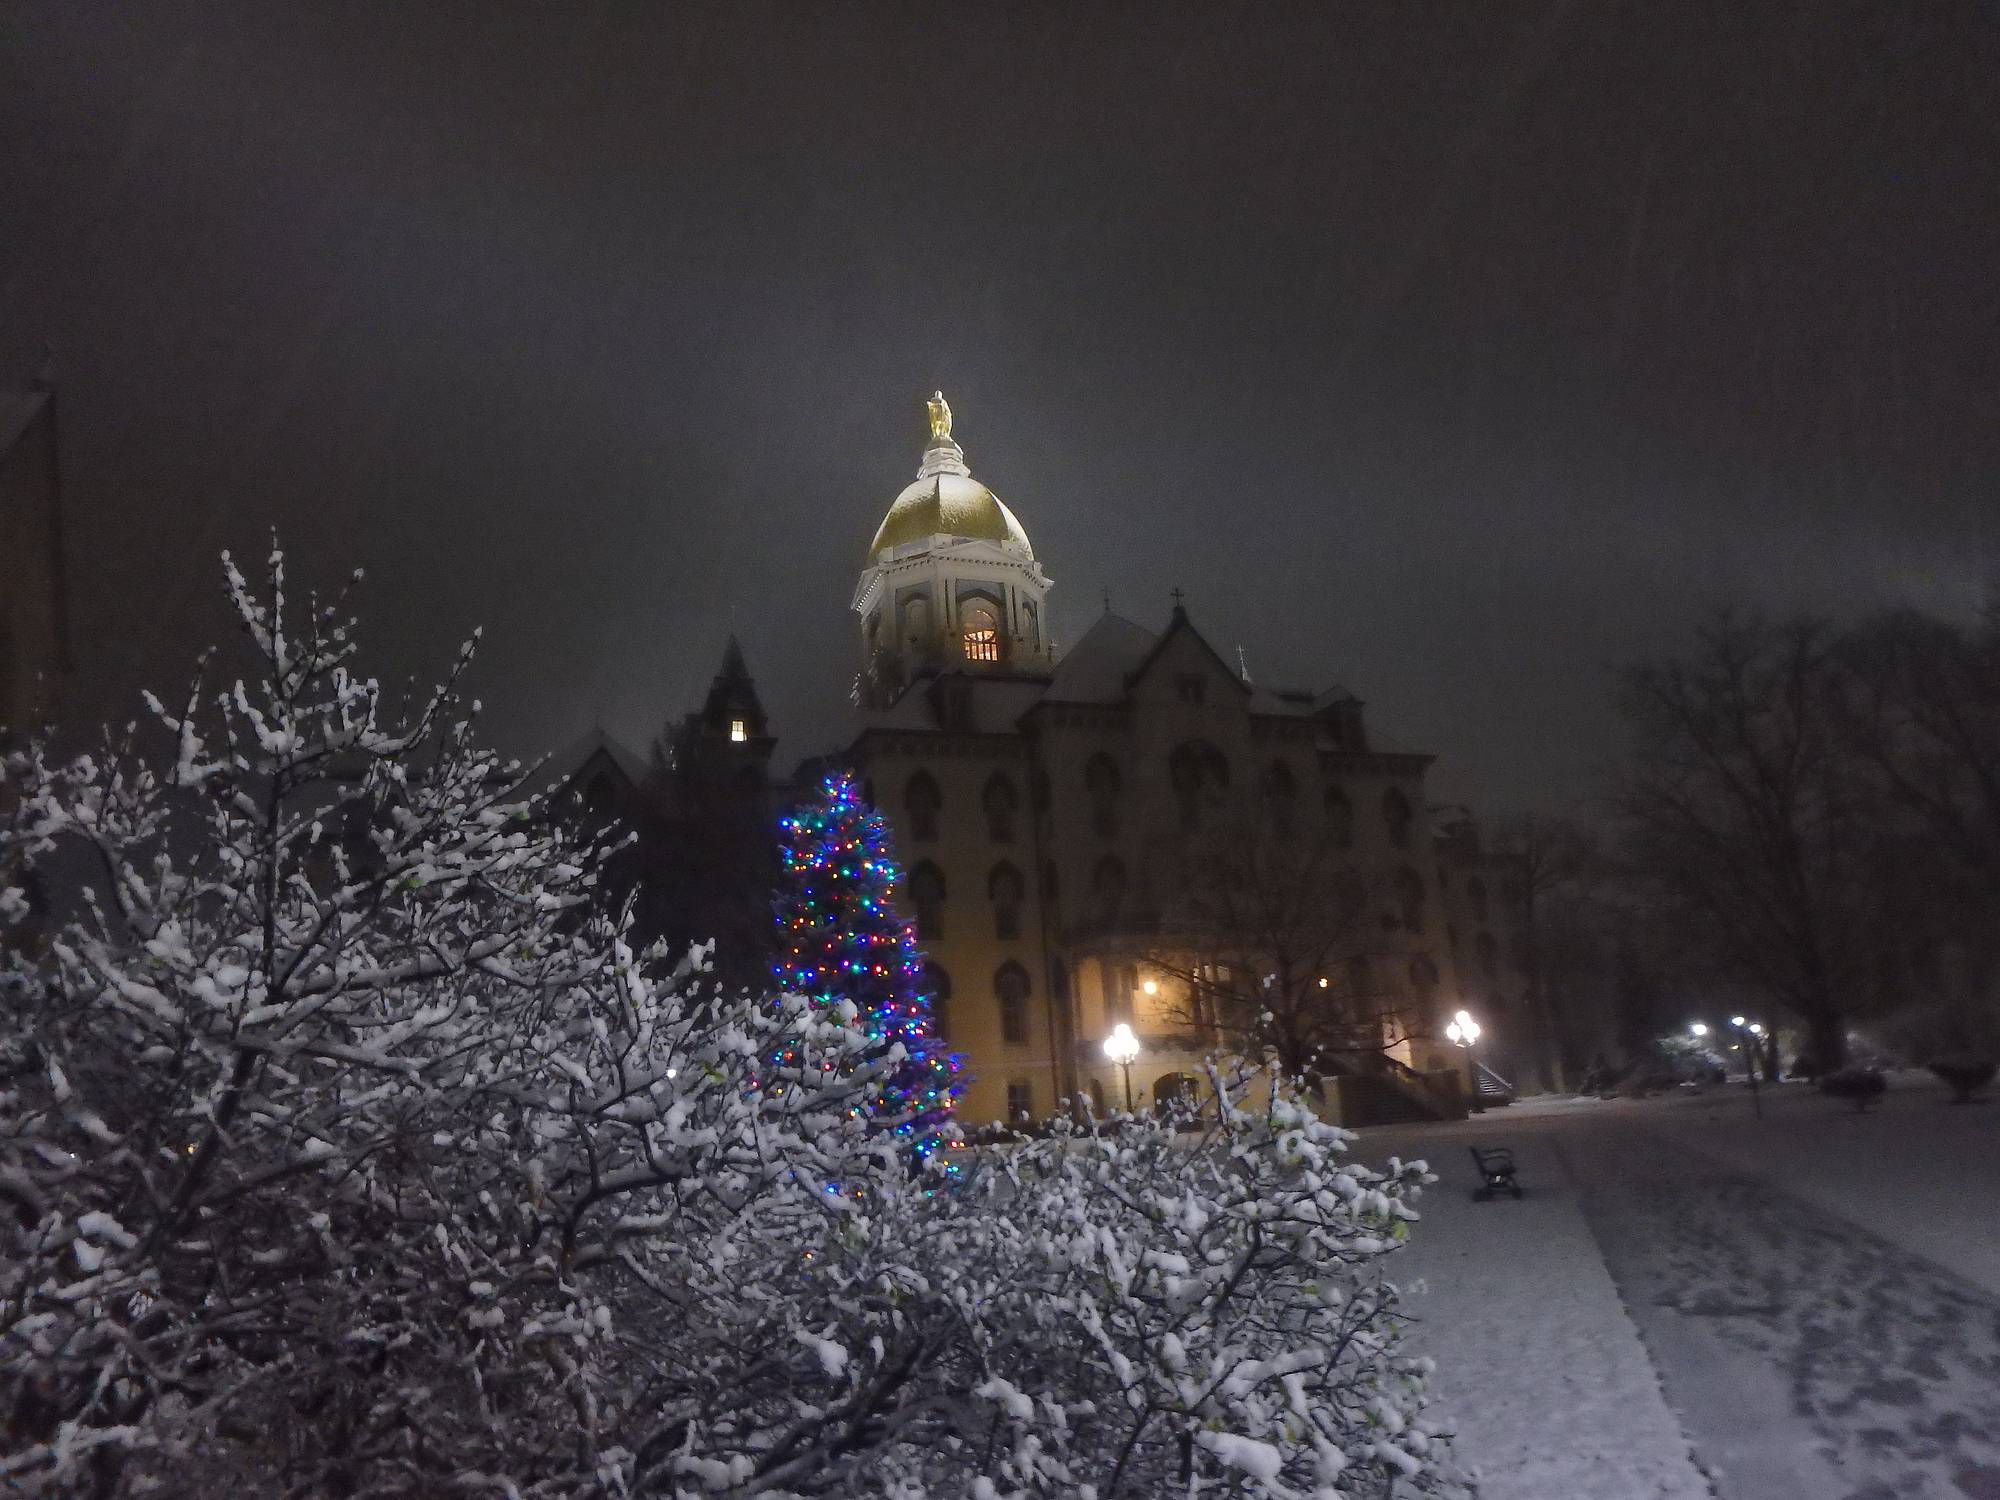 My mom, sister and I were scurrying across campus to attend the Advent Lessons and Carols at the Basilica of the Sacred Heart at the University Notre Dame. The basilica is next to the Golden Dome. As the snow fell, I took a quick shot; talk about the Christmas Spirit!